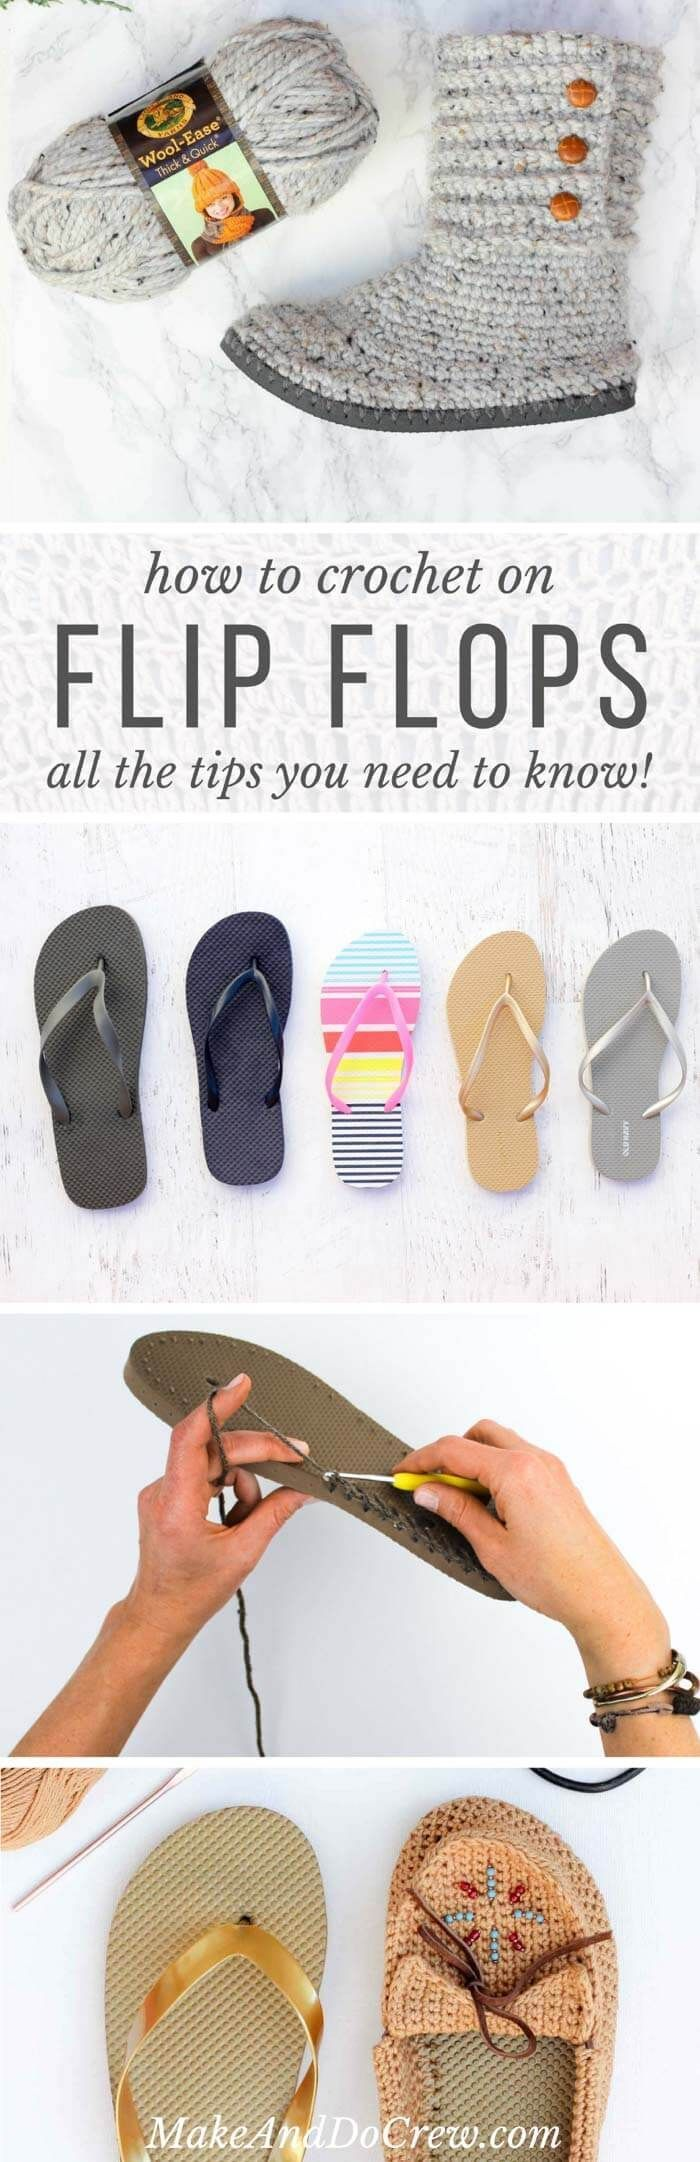 If you're curious how to crochet on flip flops, this post will answer all your questions including if they fall apart over time.